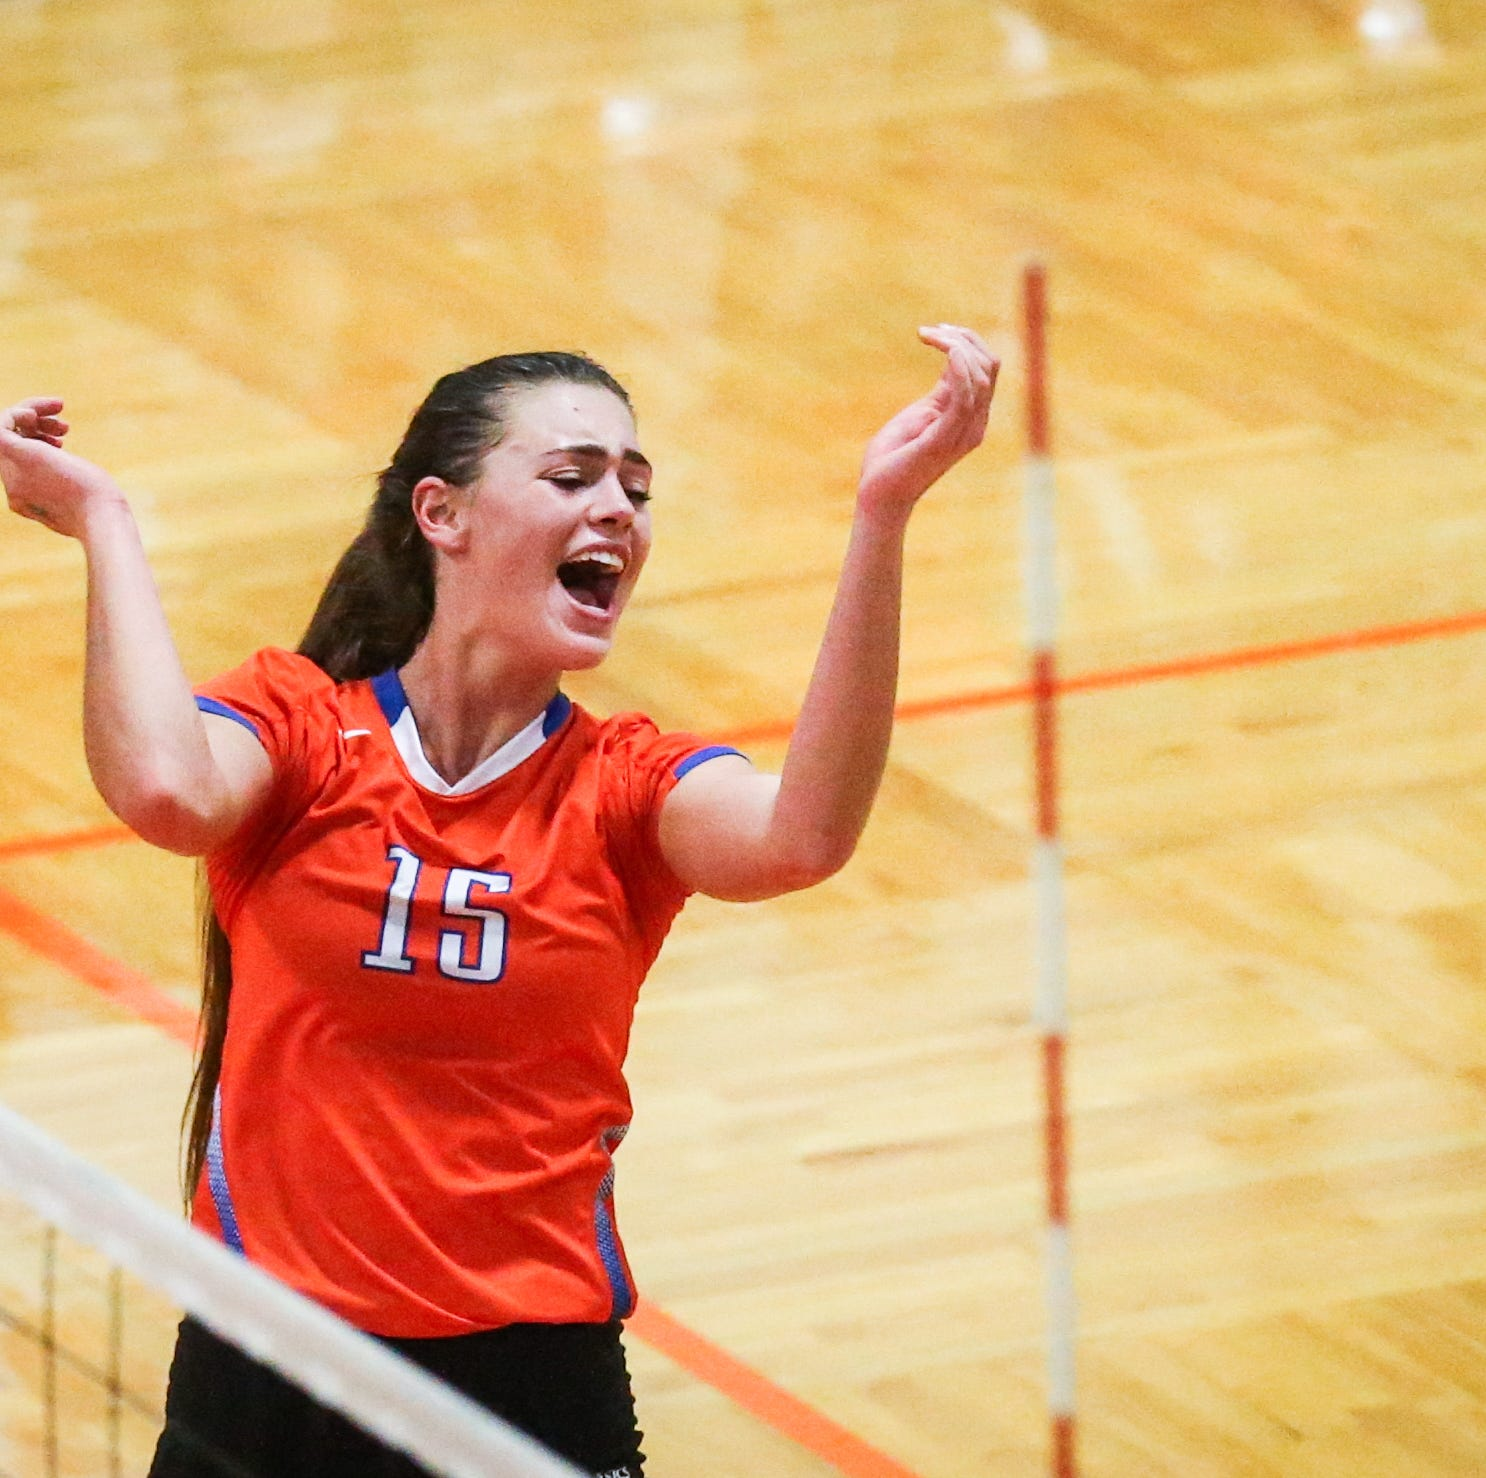 San Angelo Central volleyball standout Southall heading to SMU